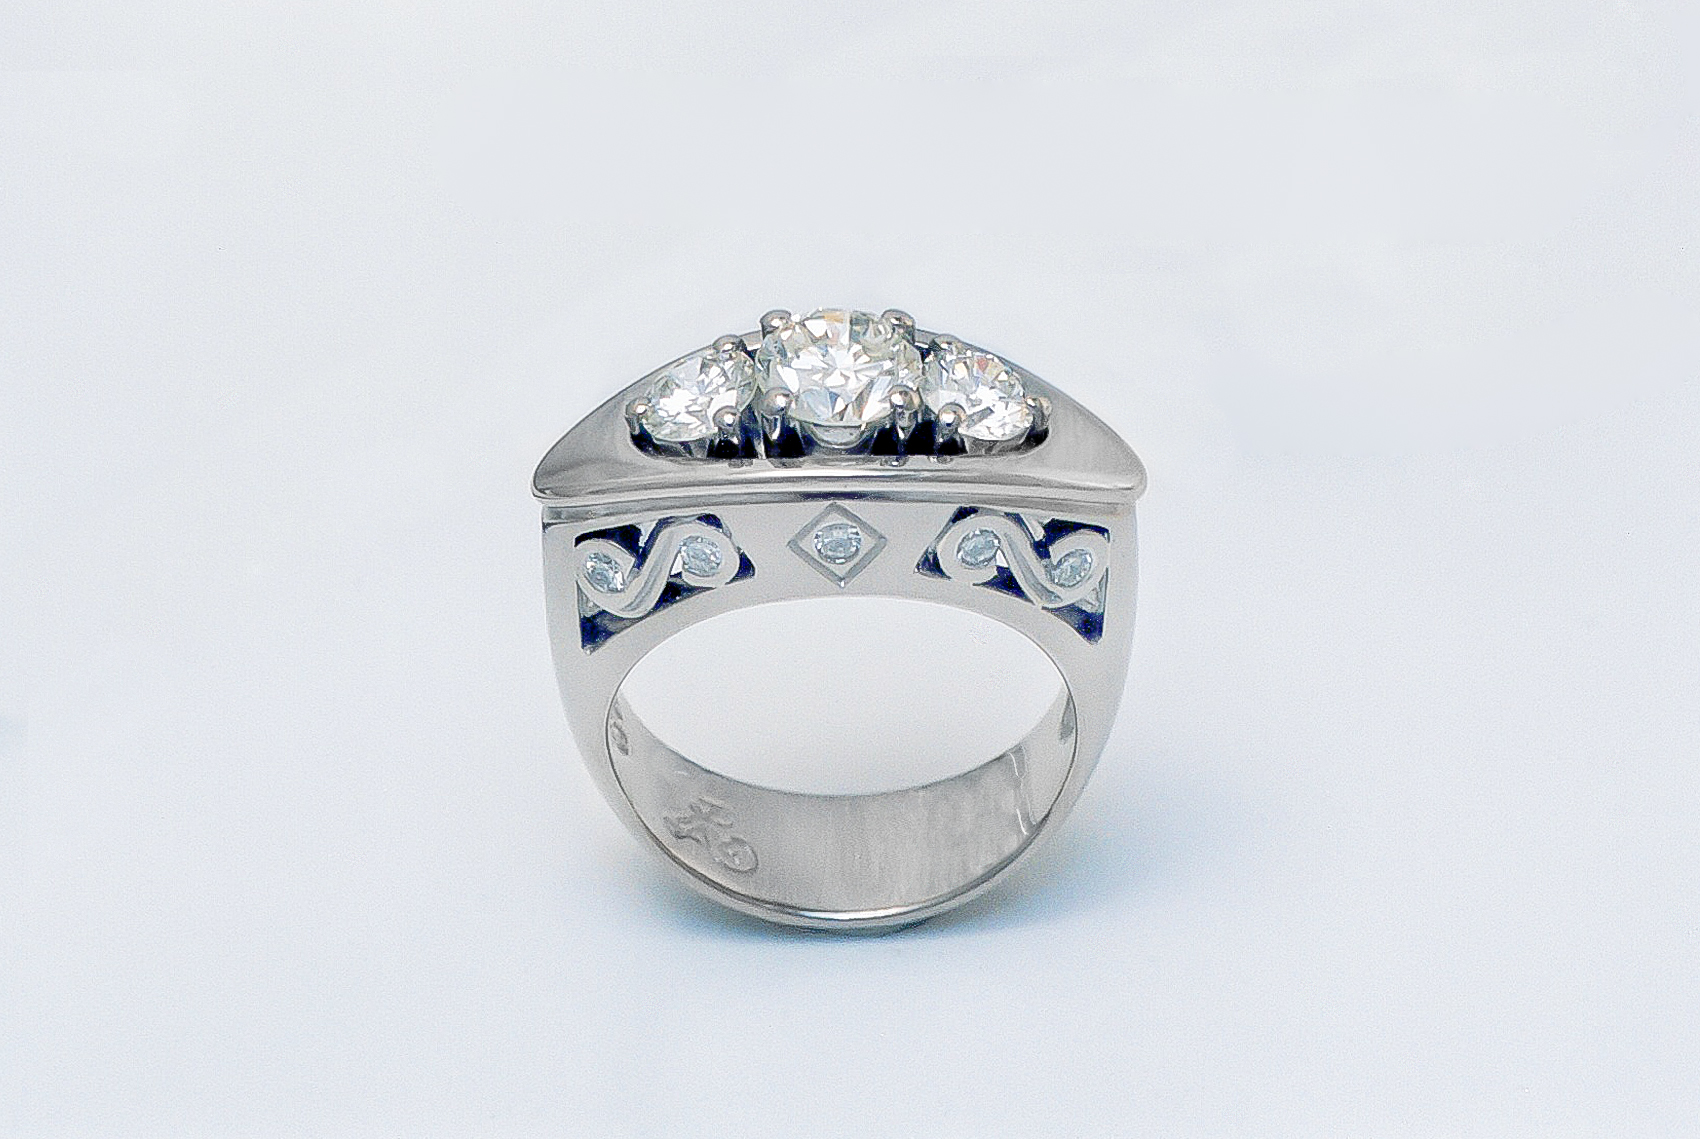 Decorative 3 Stone Diamond Ring